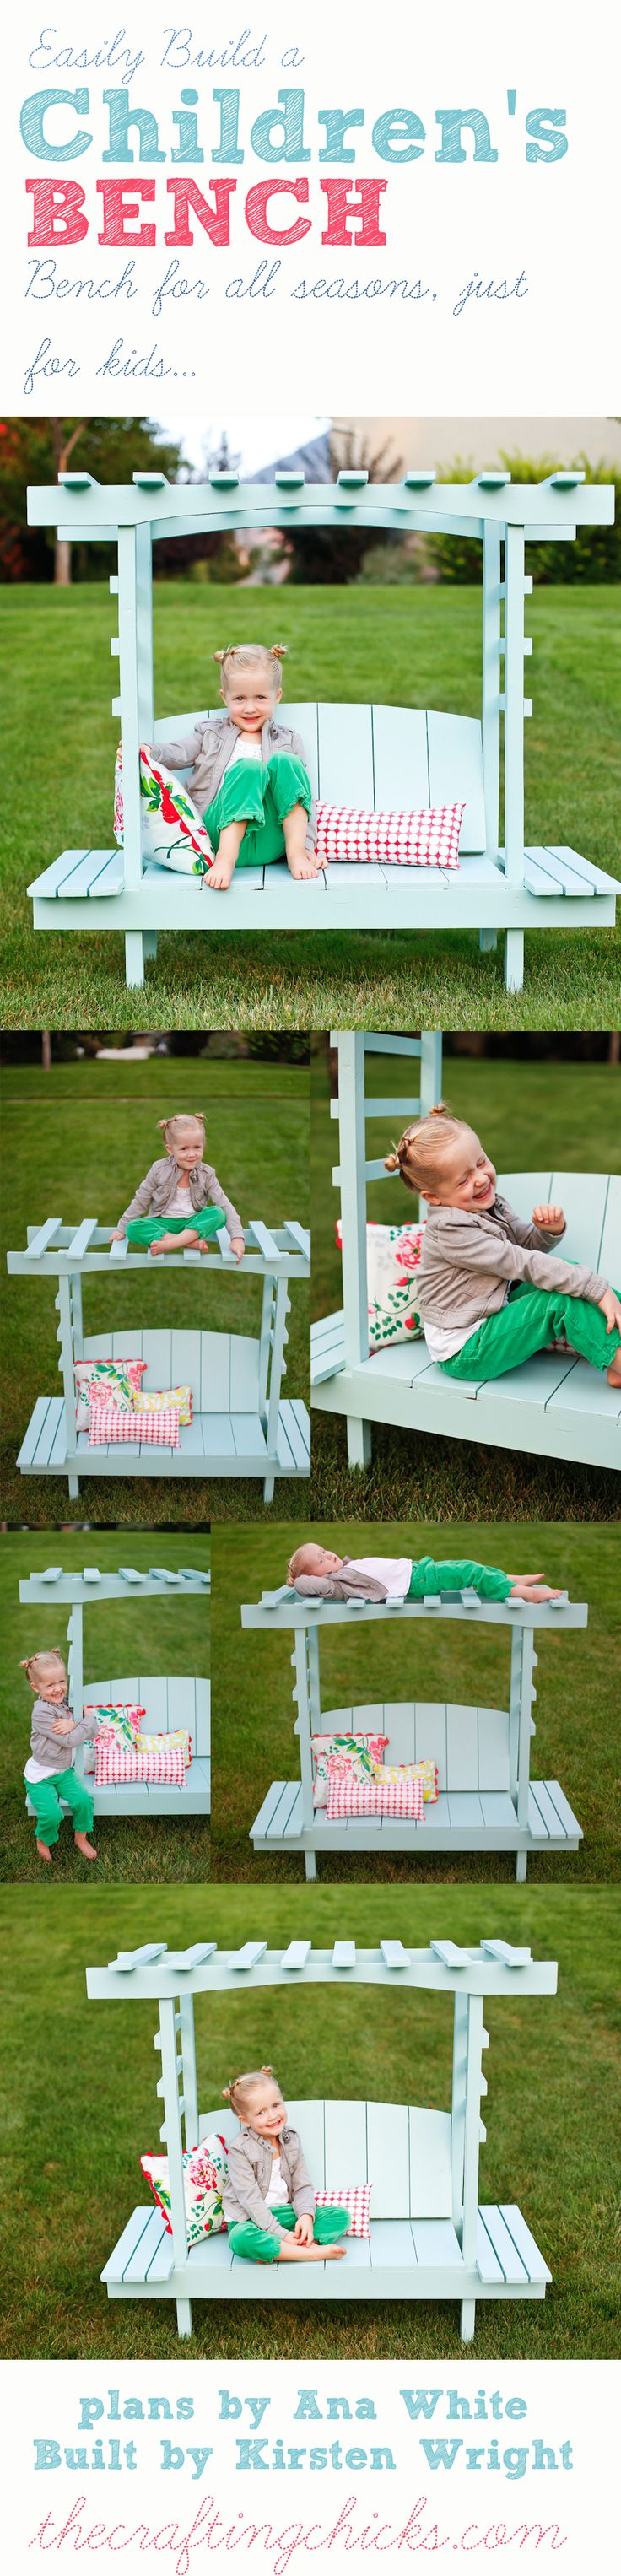 Build A Children's Arbor Bench. Fun outdoor reading area for kids.